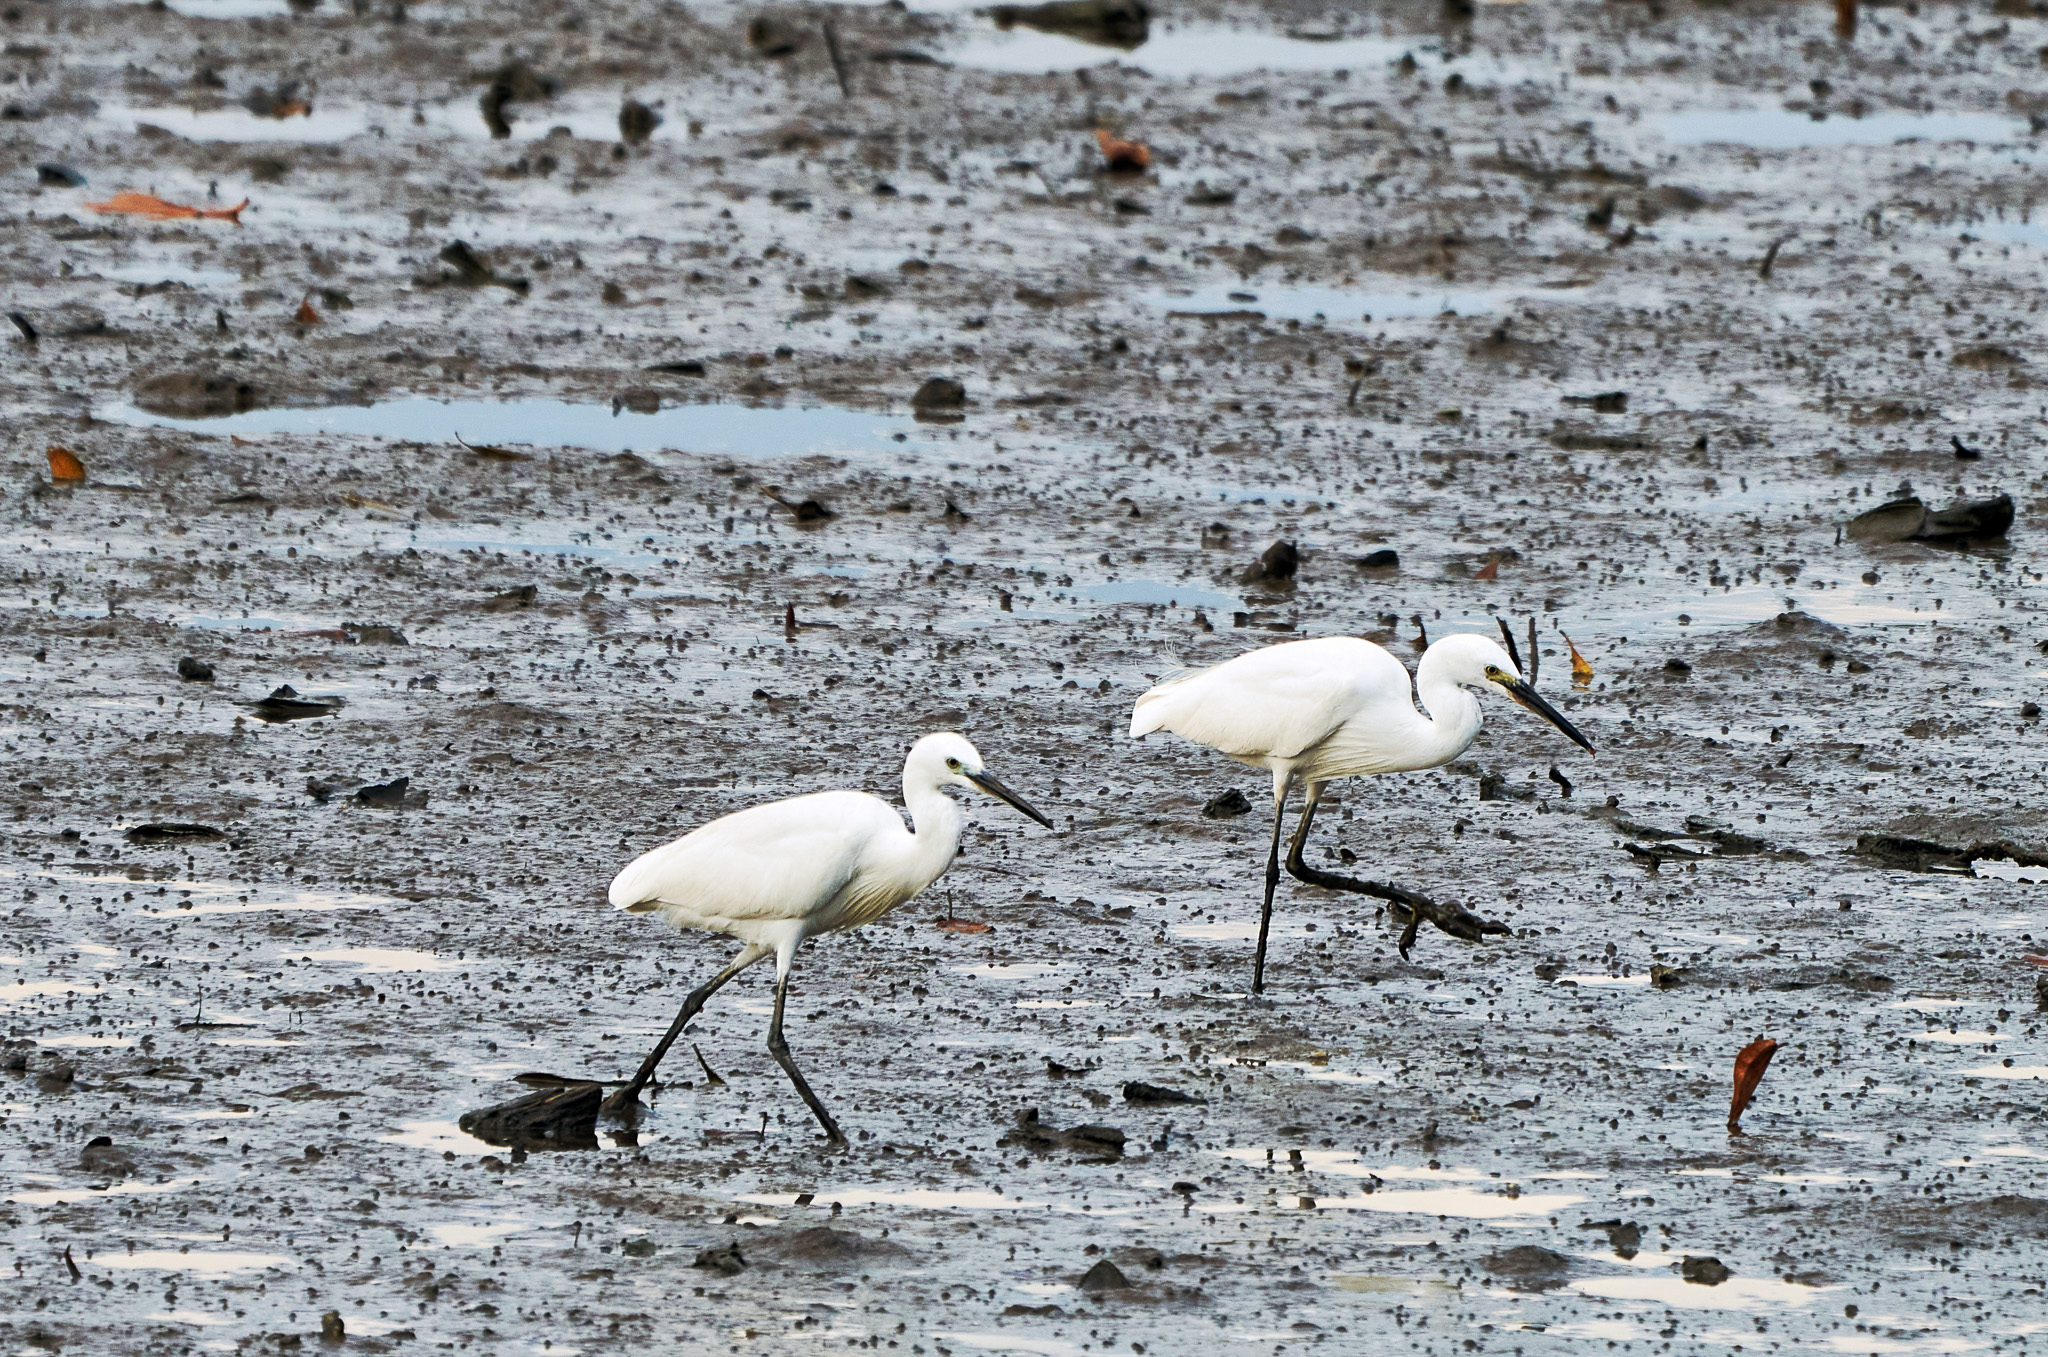 A pair of little egrets on the look out for their prey at the Sungei Buloh Wetland Reserve, Singapore.